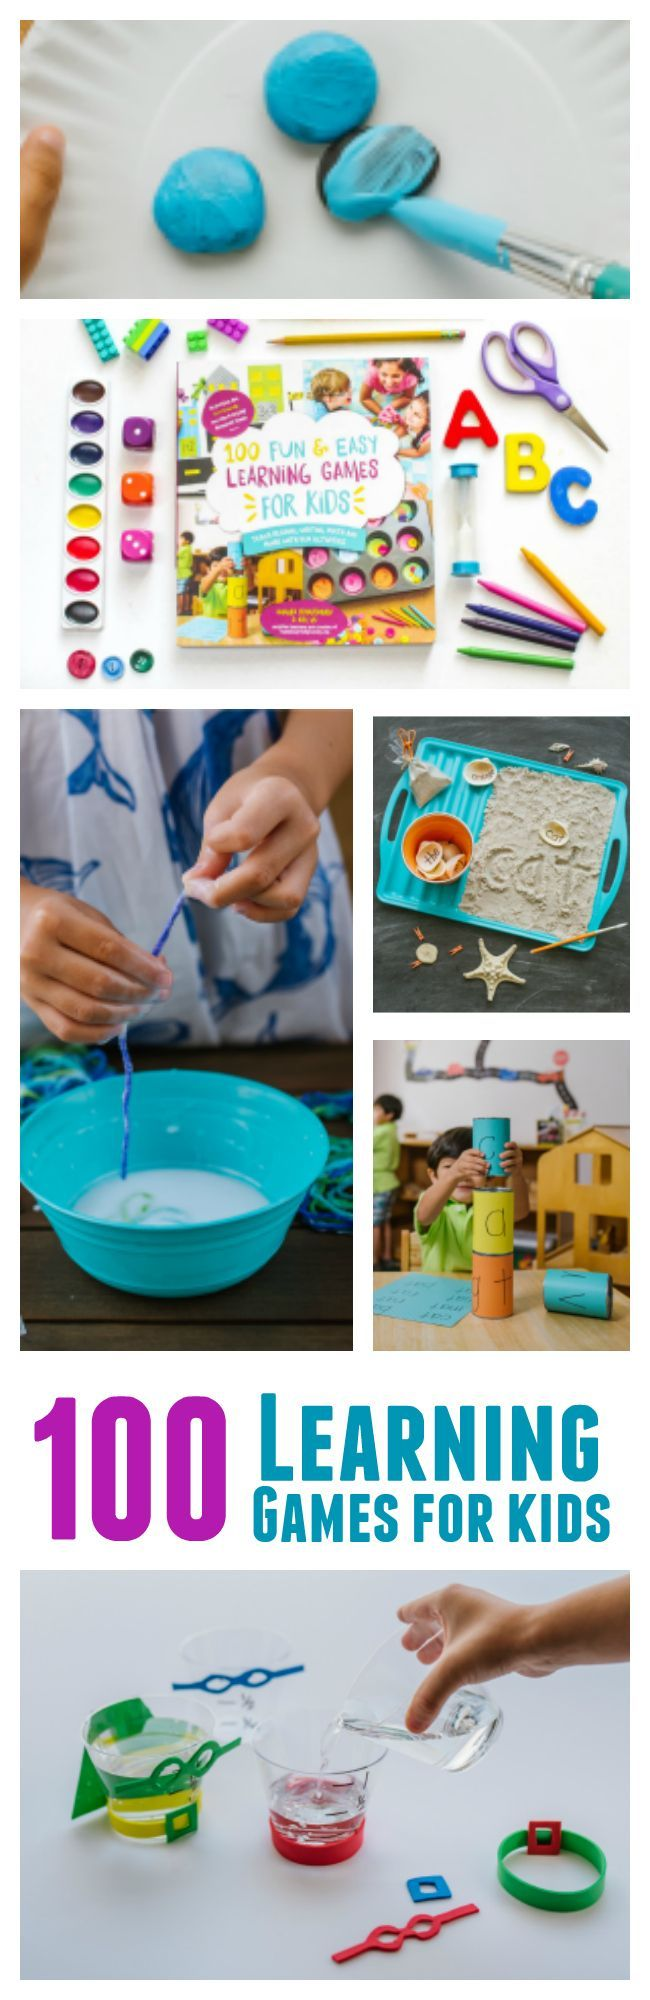 241 best images about for the kids on pinterest for Fun things to build with household items